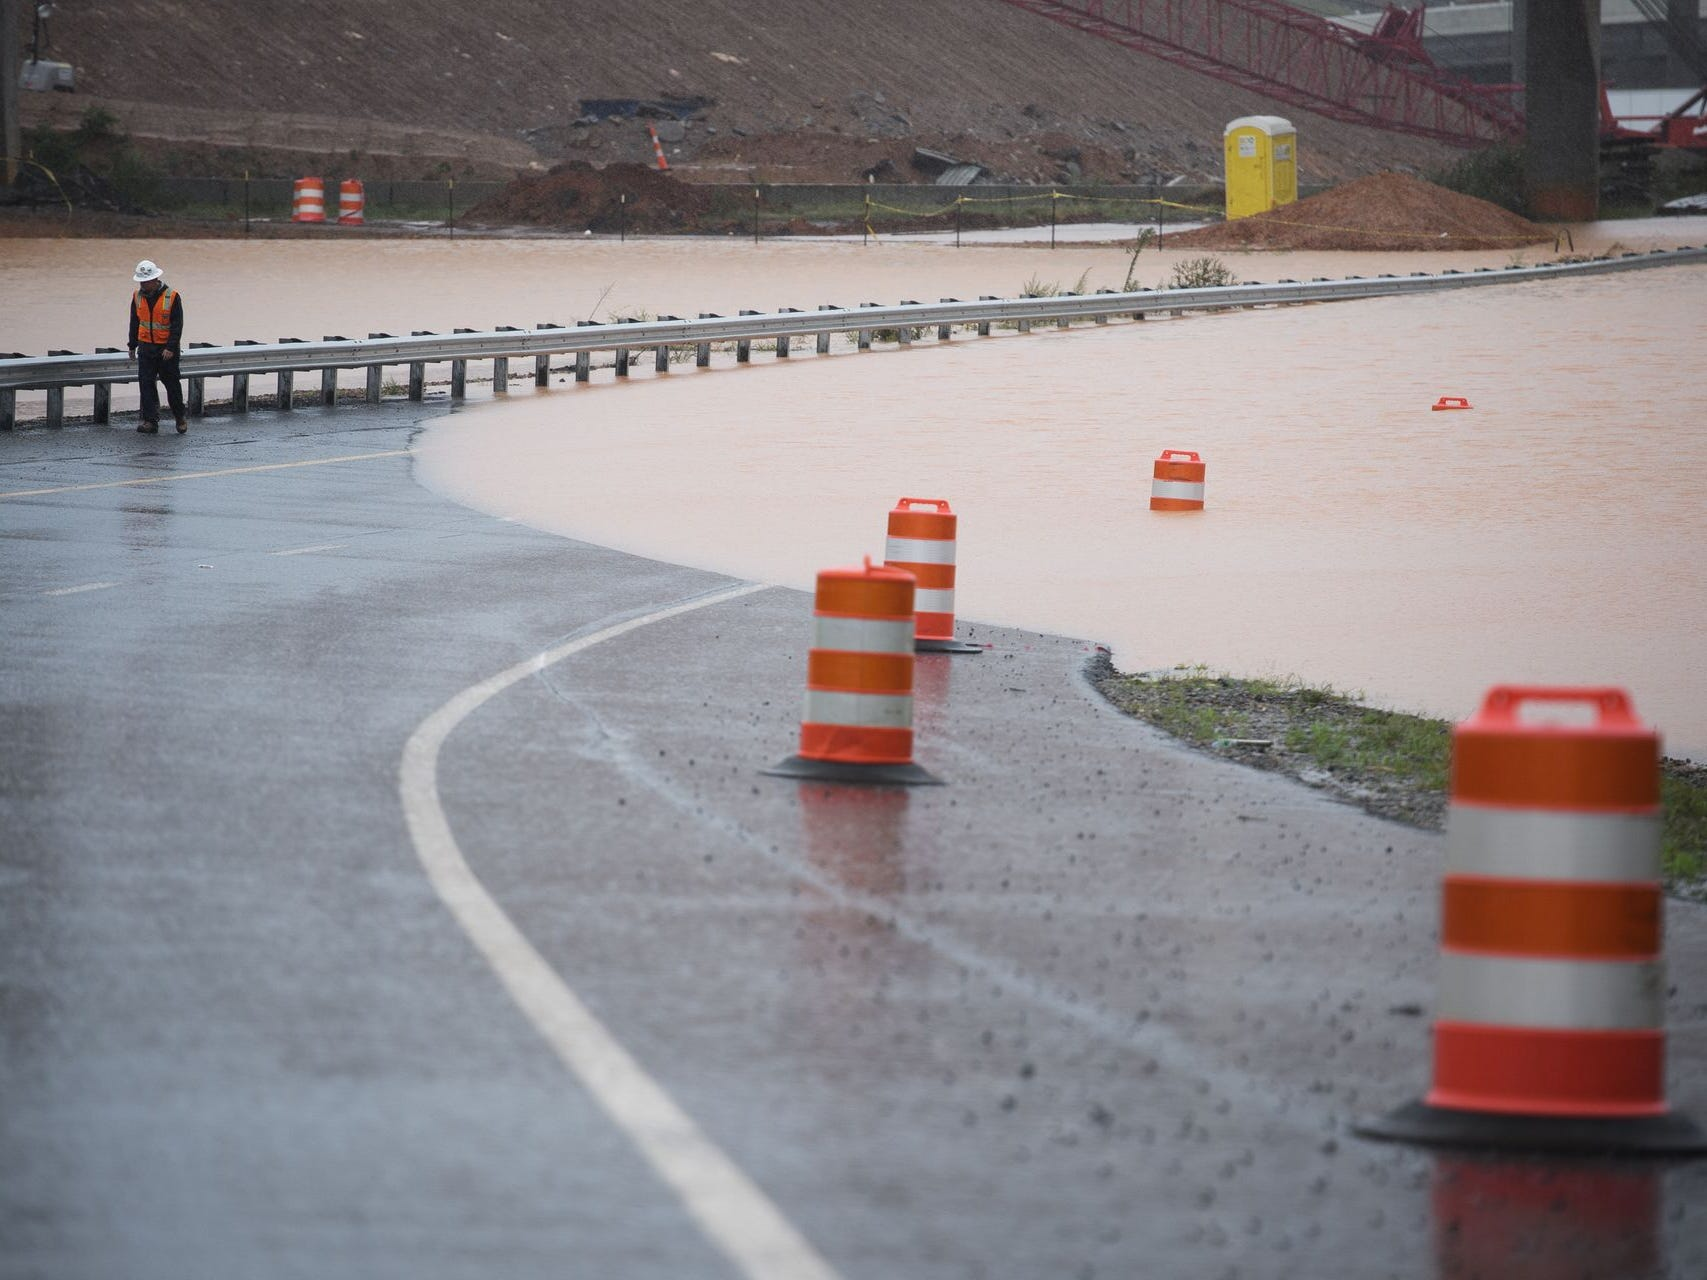 The Gateway Project at the intersection of Interstates 385 and 85 is flooded as Tropical Storm Michael hits the Greenville, S.C. area on Thursday, Oct. 11, 2018.